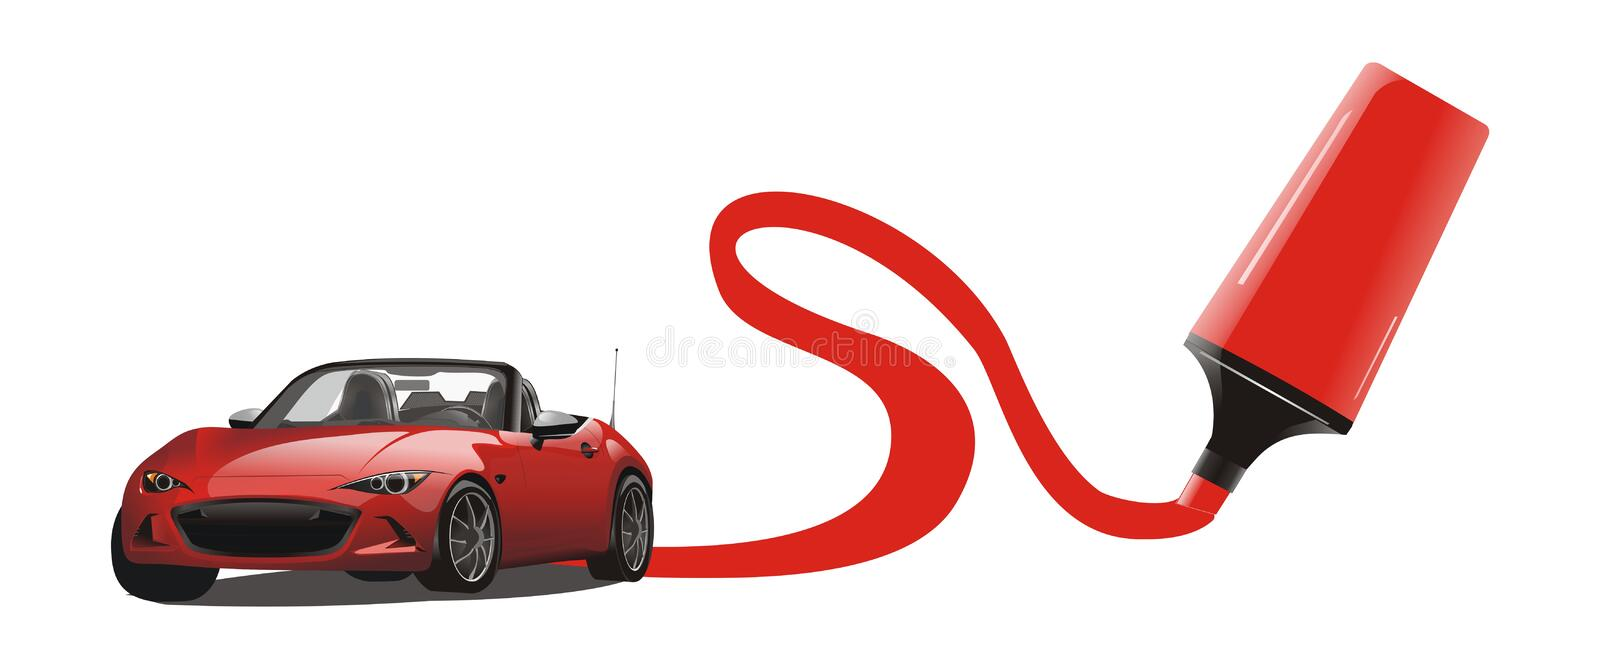 Vector of red sport car drawing stock images